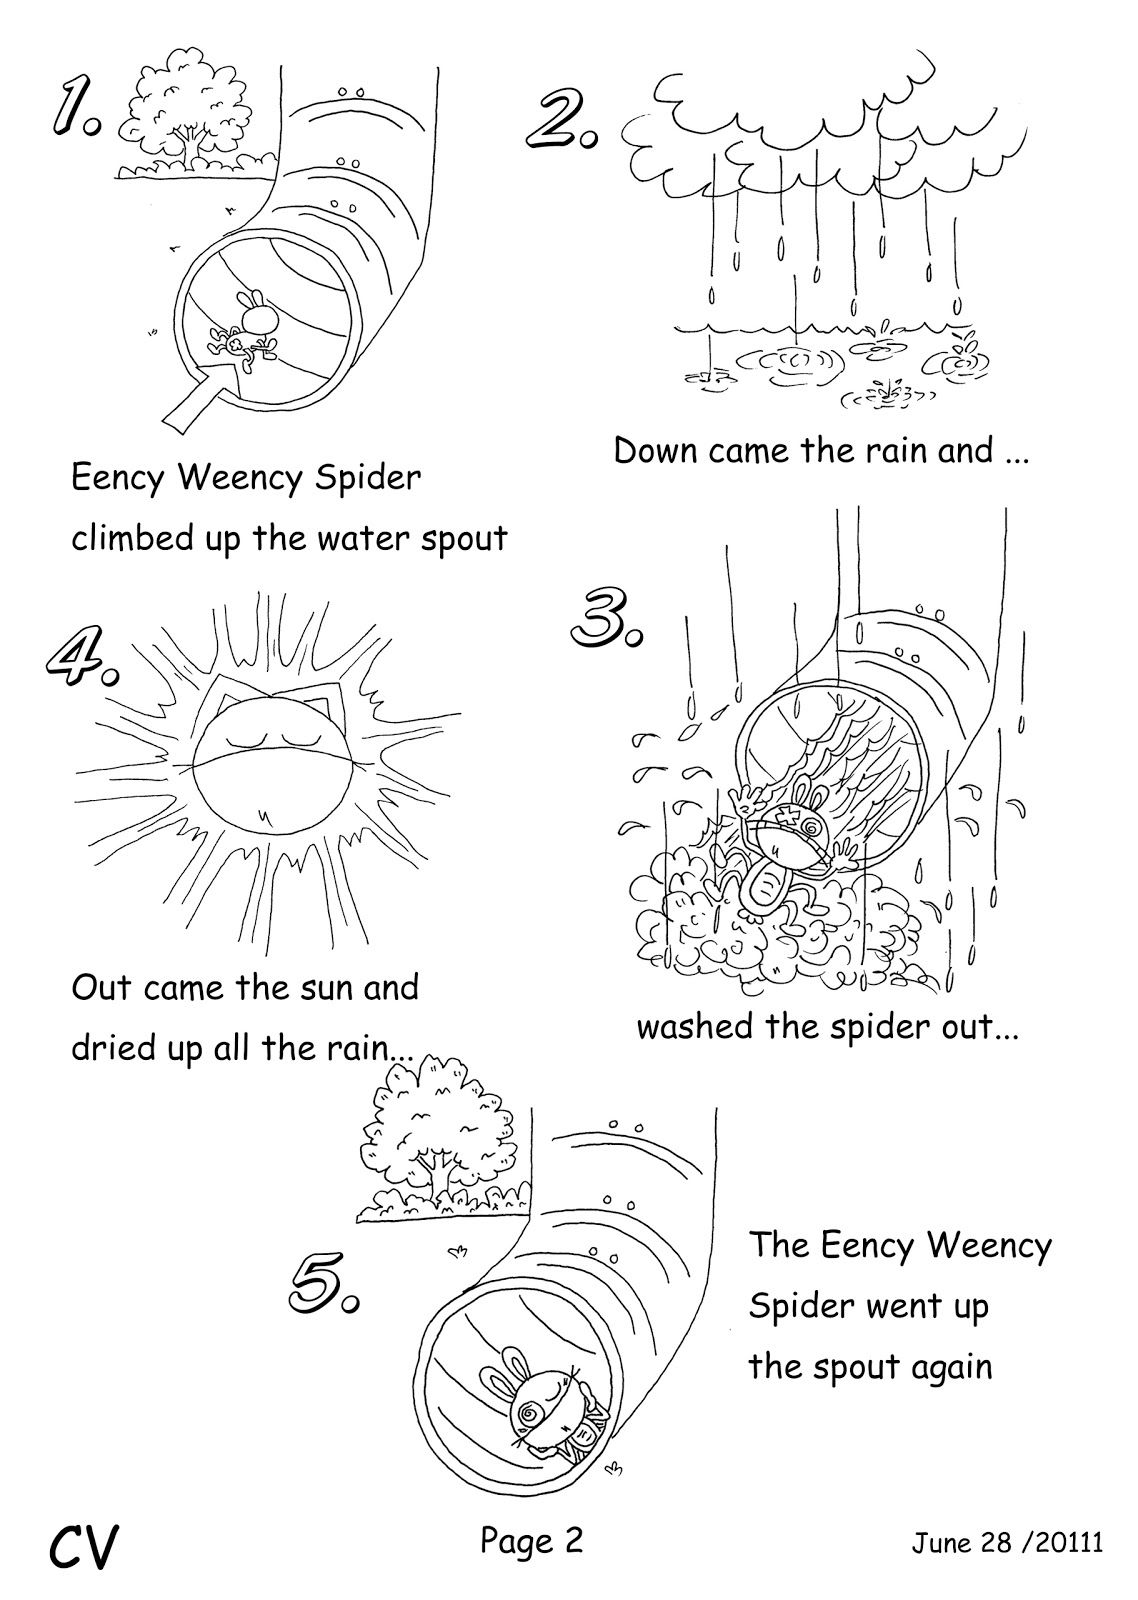 picture regarding Shape Books Printable referred to as Itsy Bitsy Spider Sequencing Printable Pre-K Incy wincy